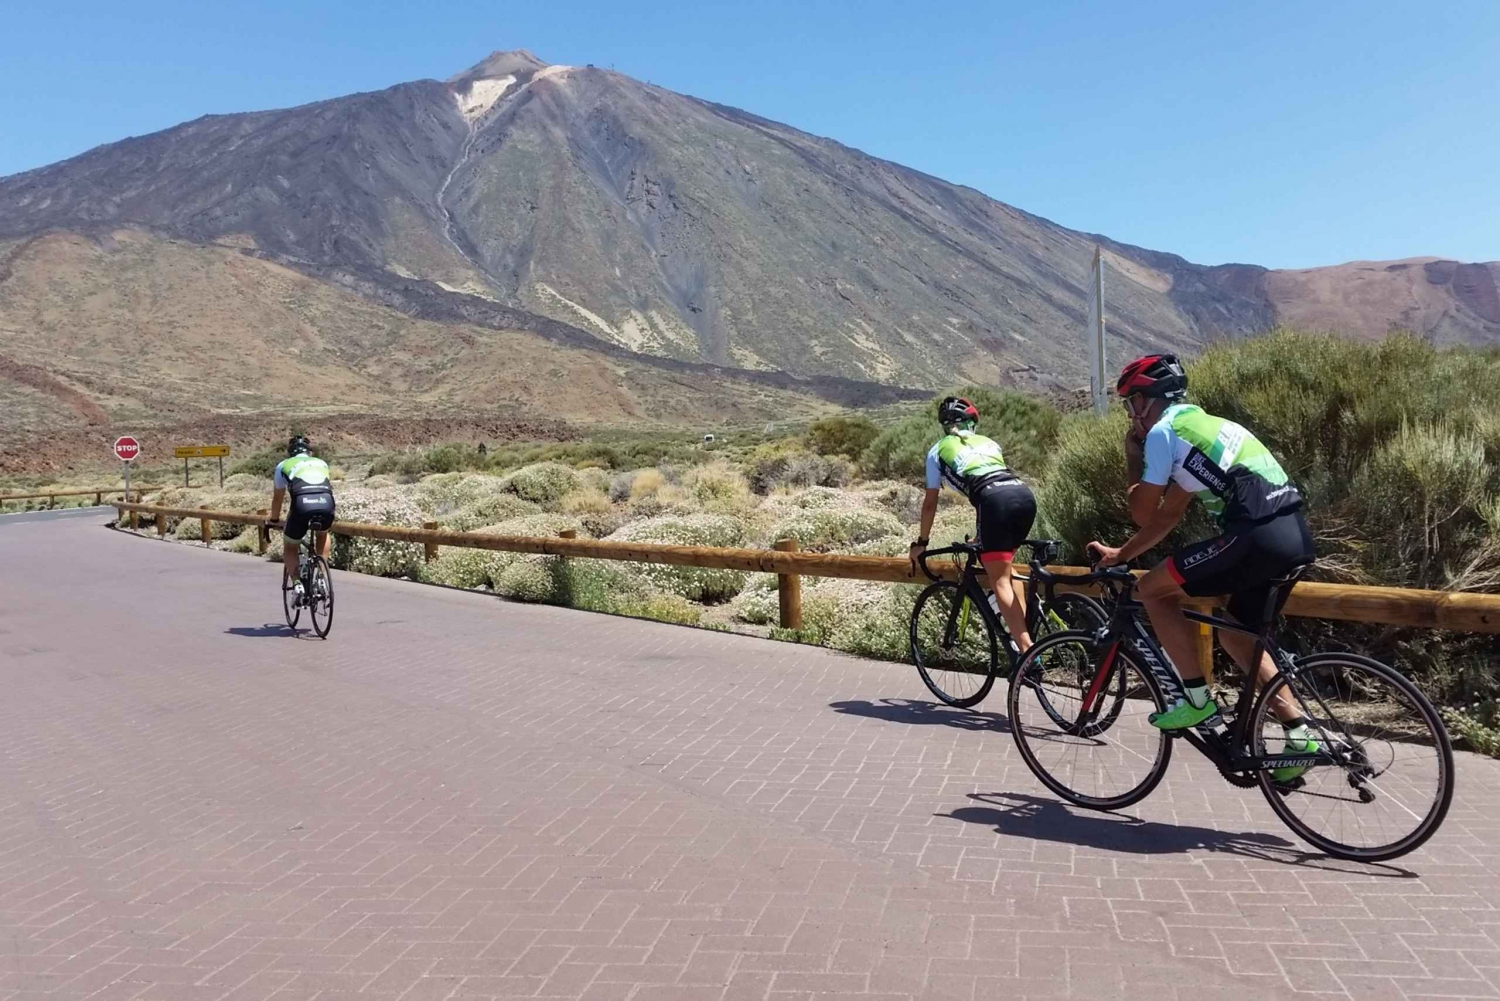 El Teide: Full-Day Road Cycling Route on Fridays